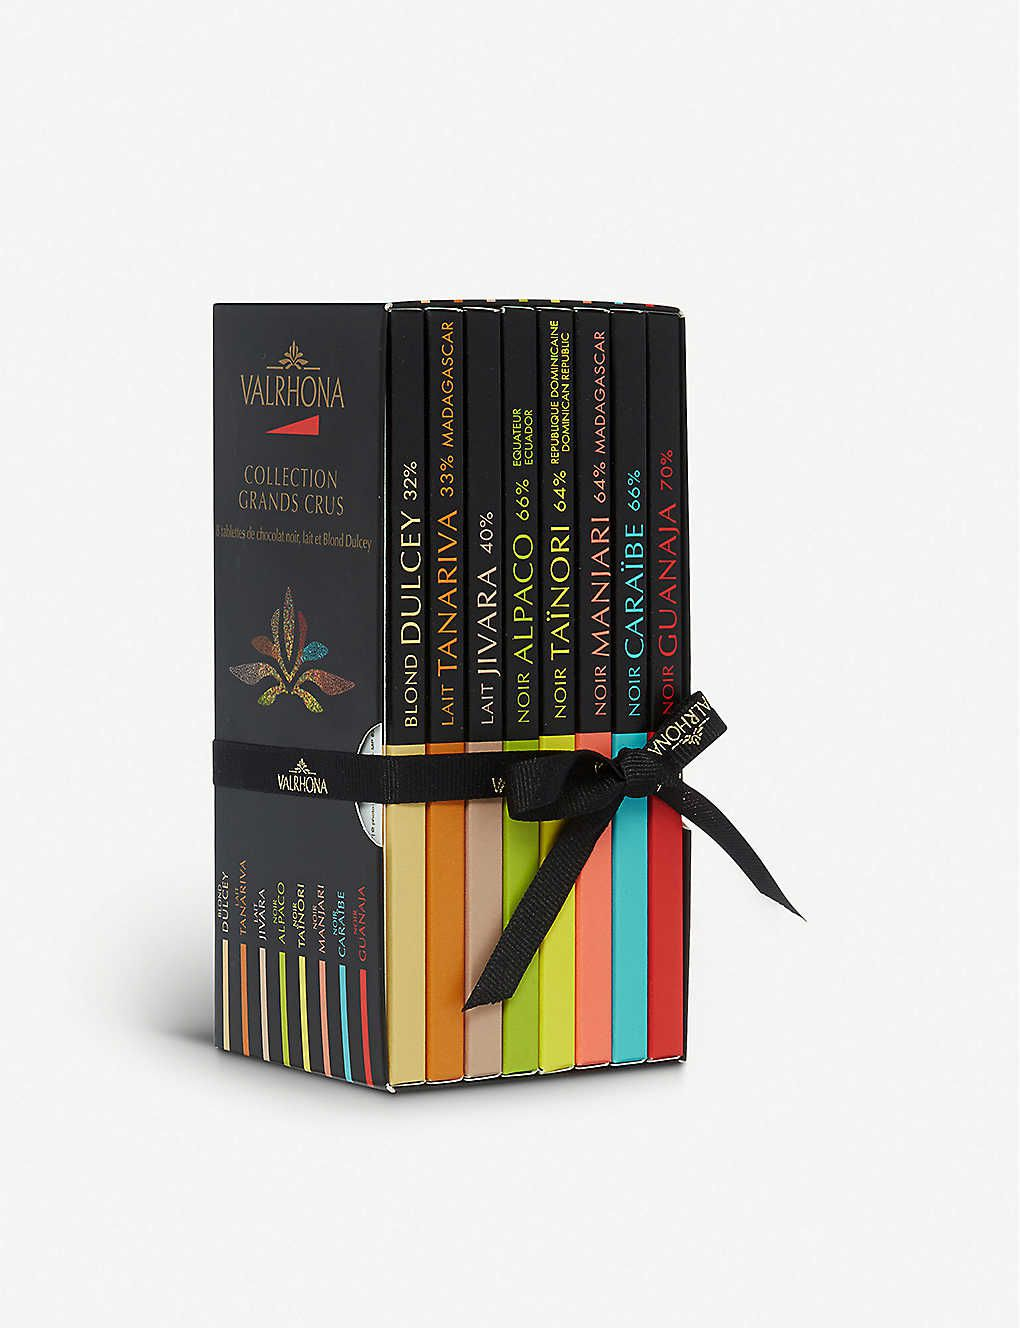 valrhona-collection-grands-crus